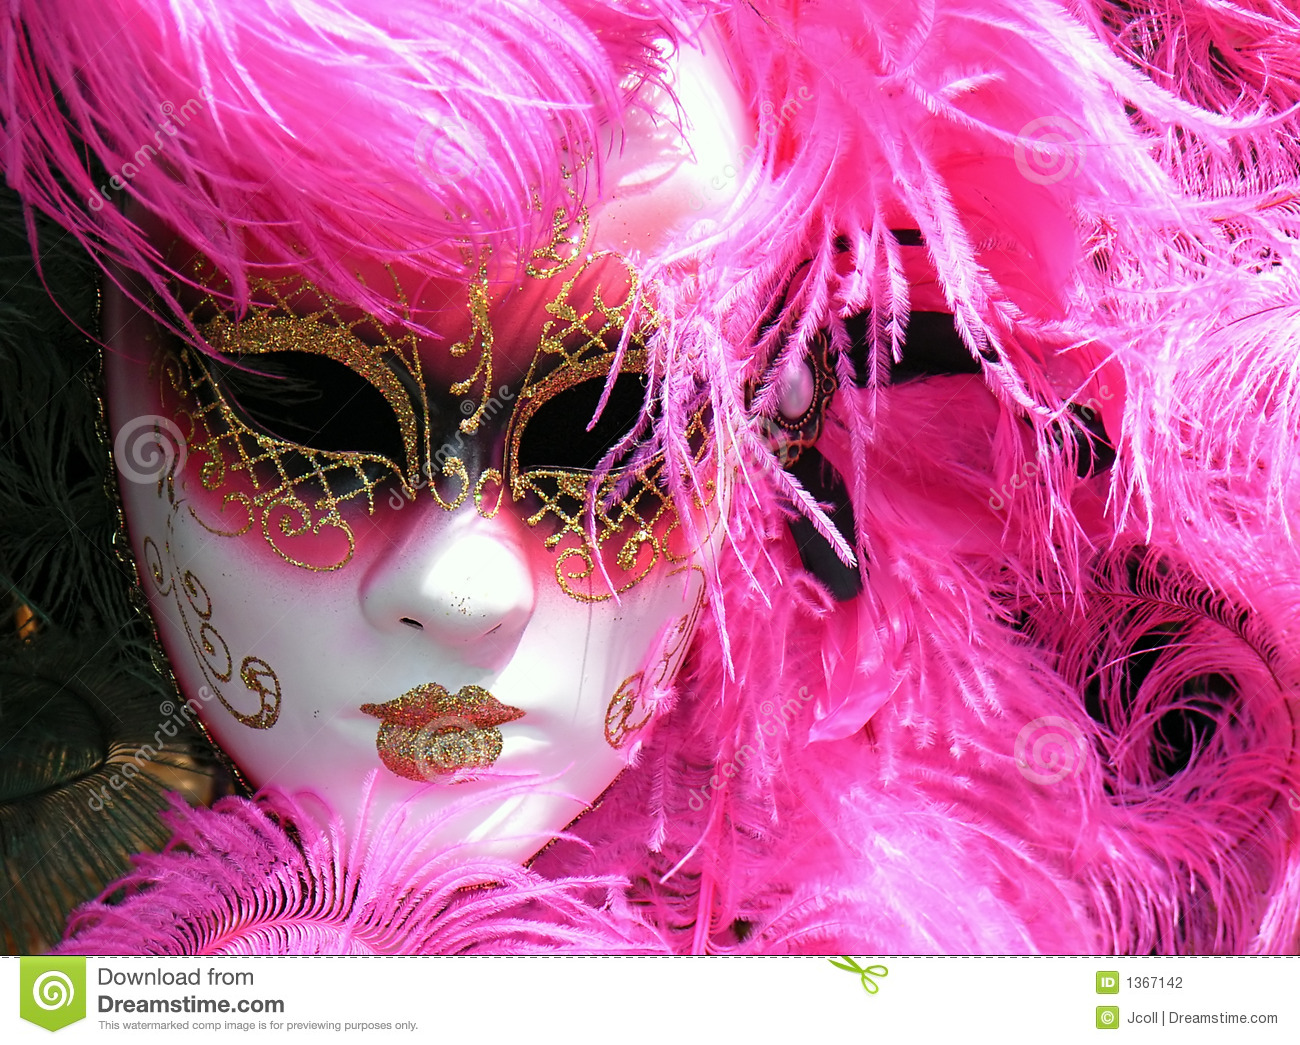 Pink Mask Stock Photo Image Of Colorful, Comedia, Gras - 1367142-9048